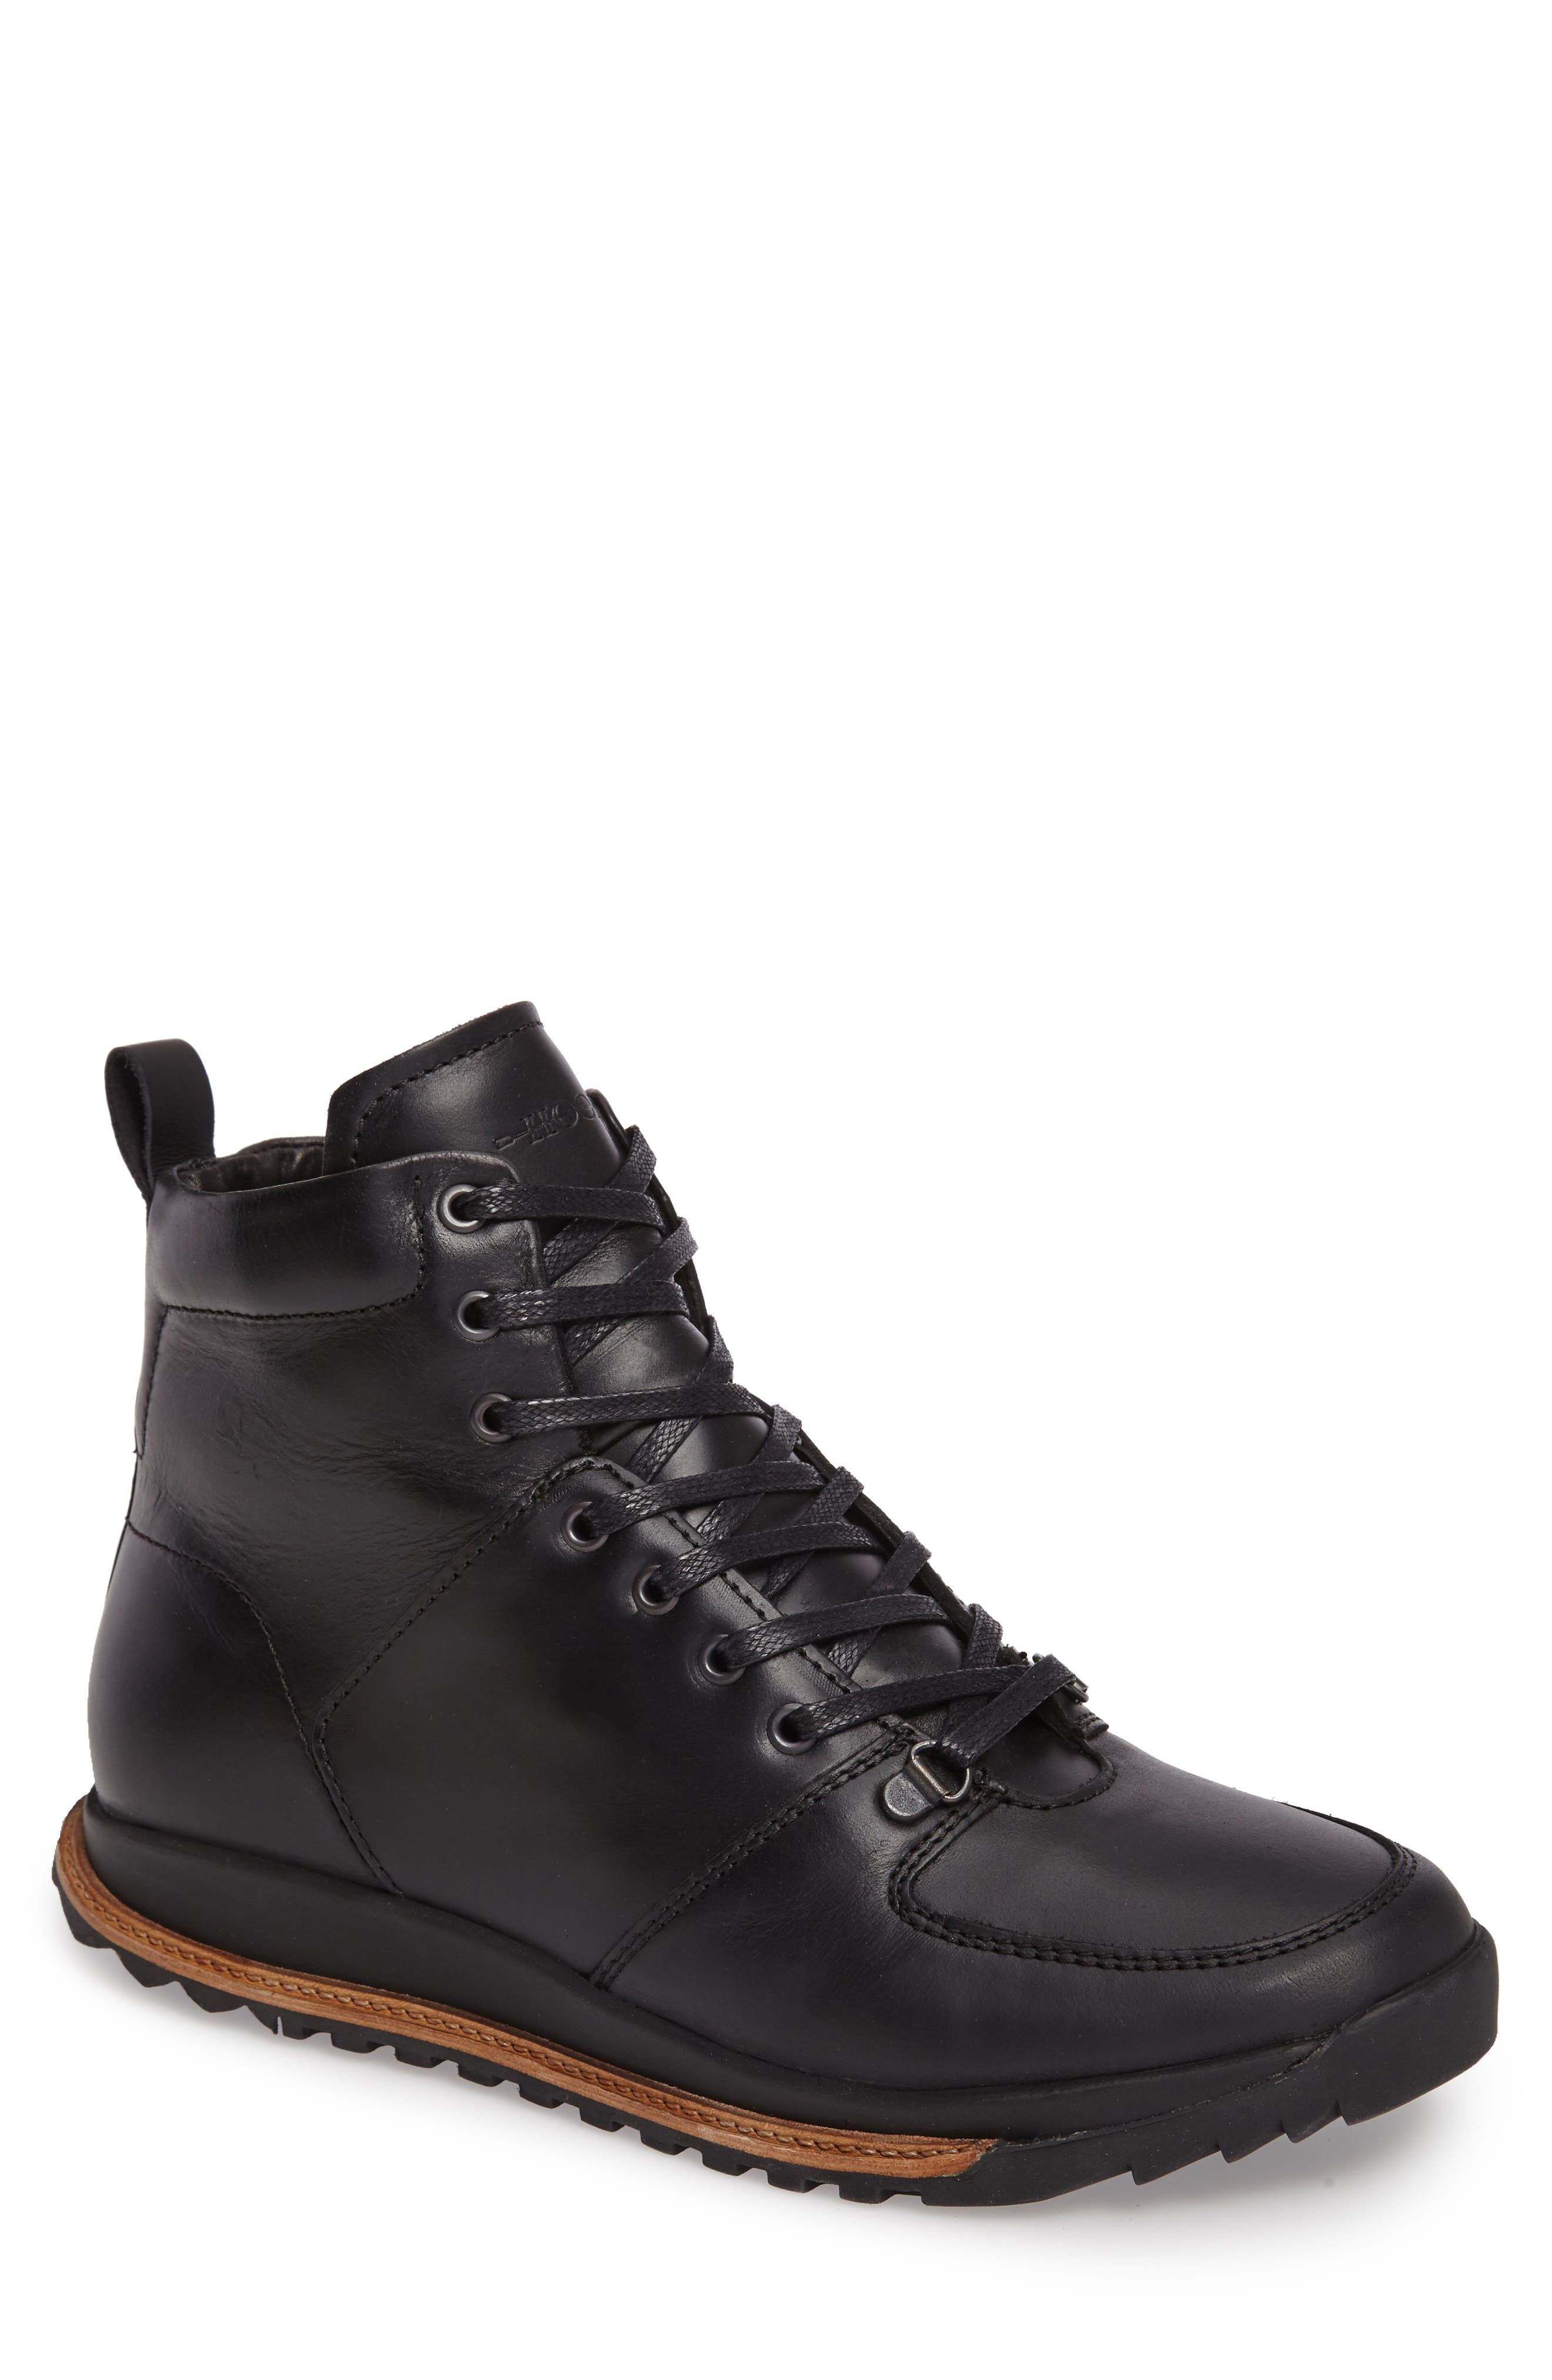 Concord Mid Top Wool Cuffed Waterproof Boot,                         Main,                         color, 001